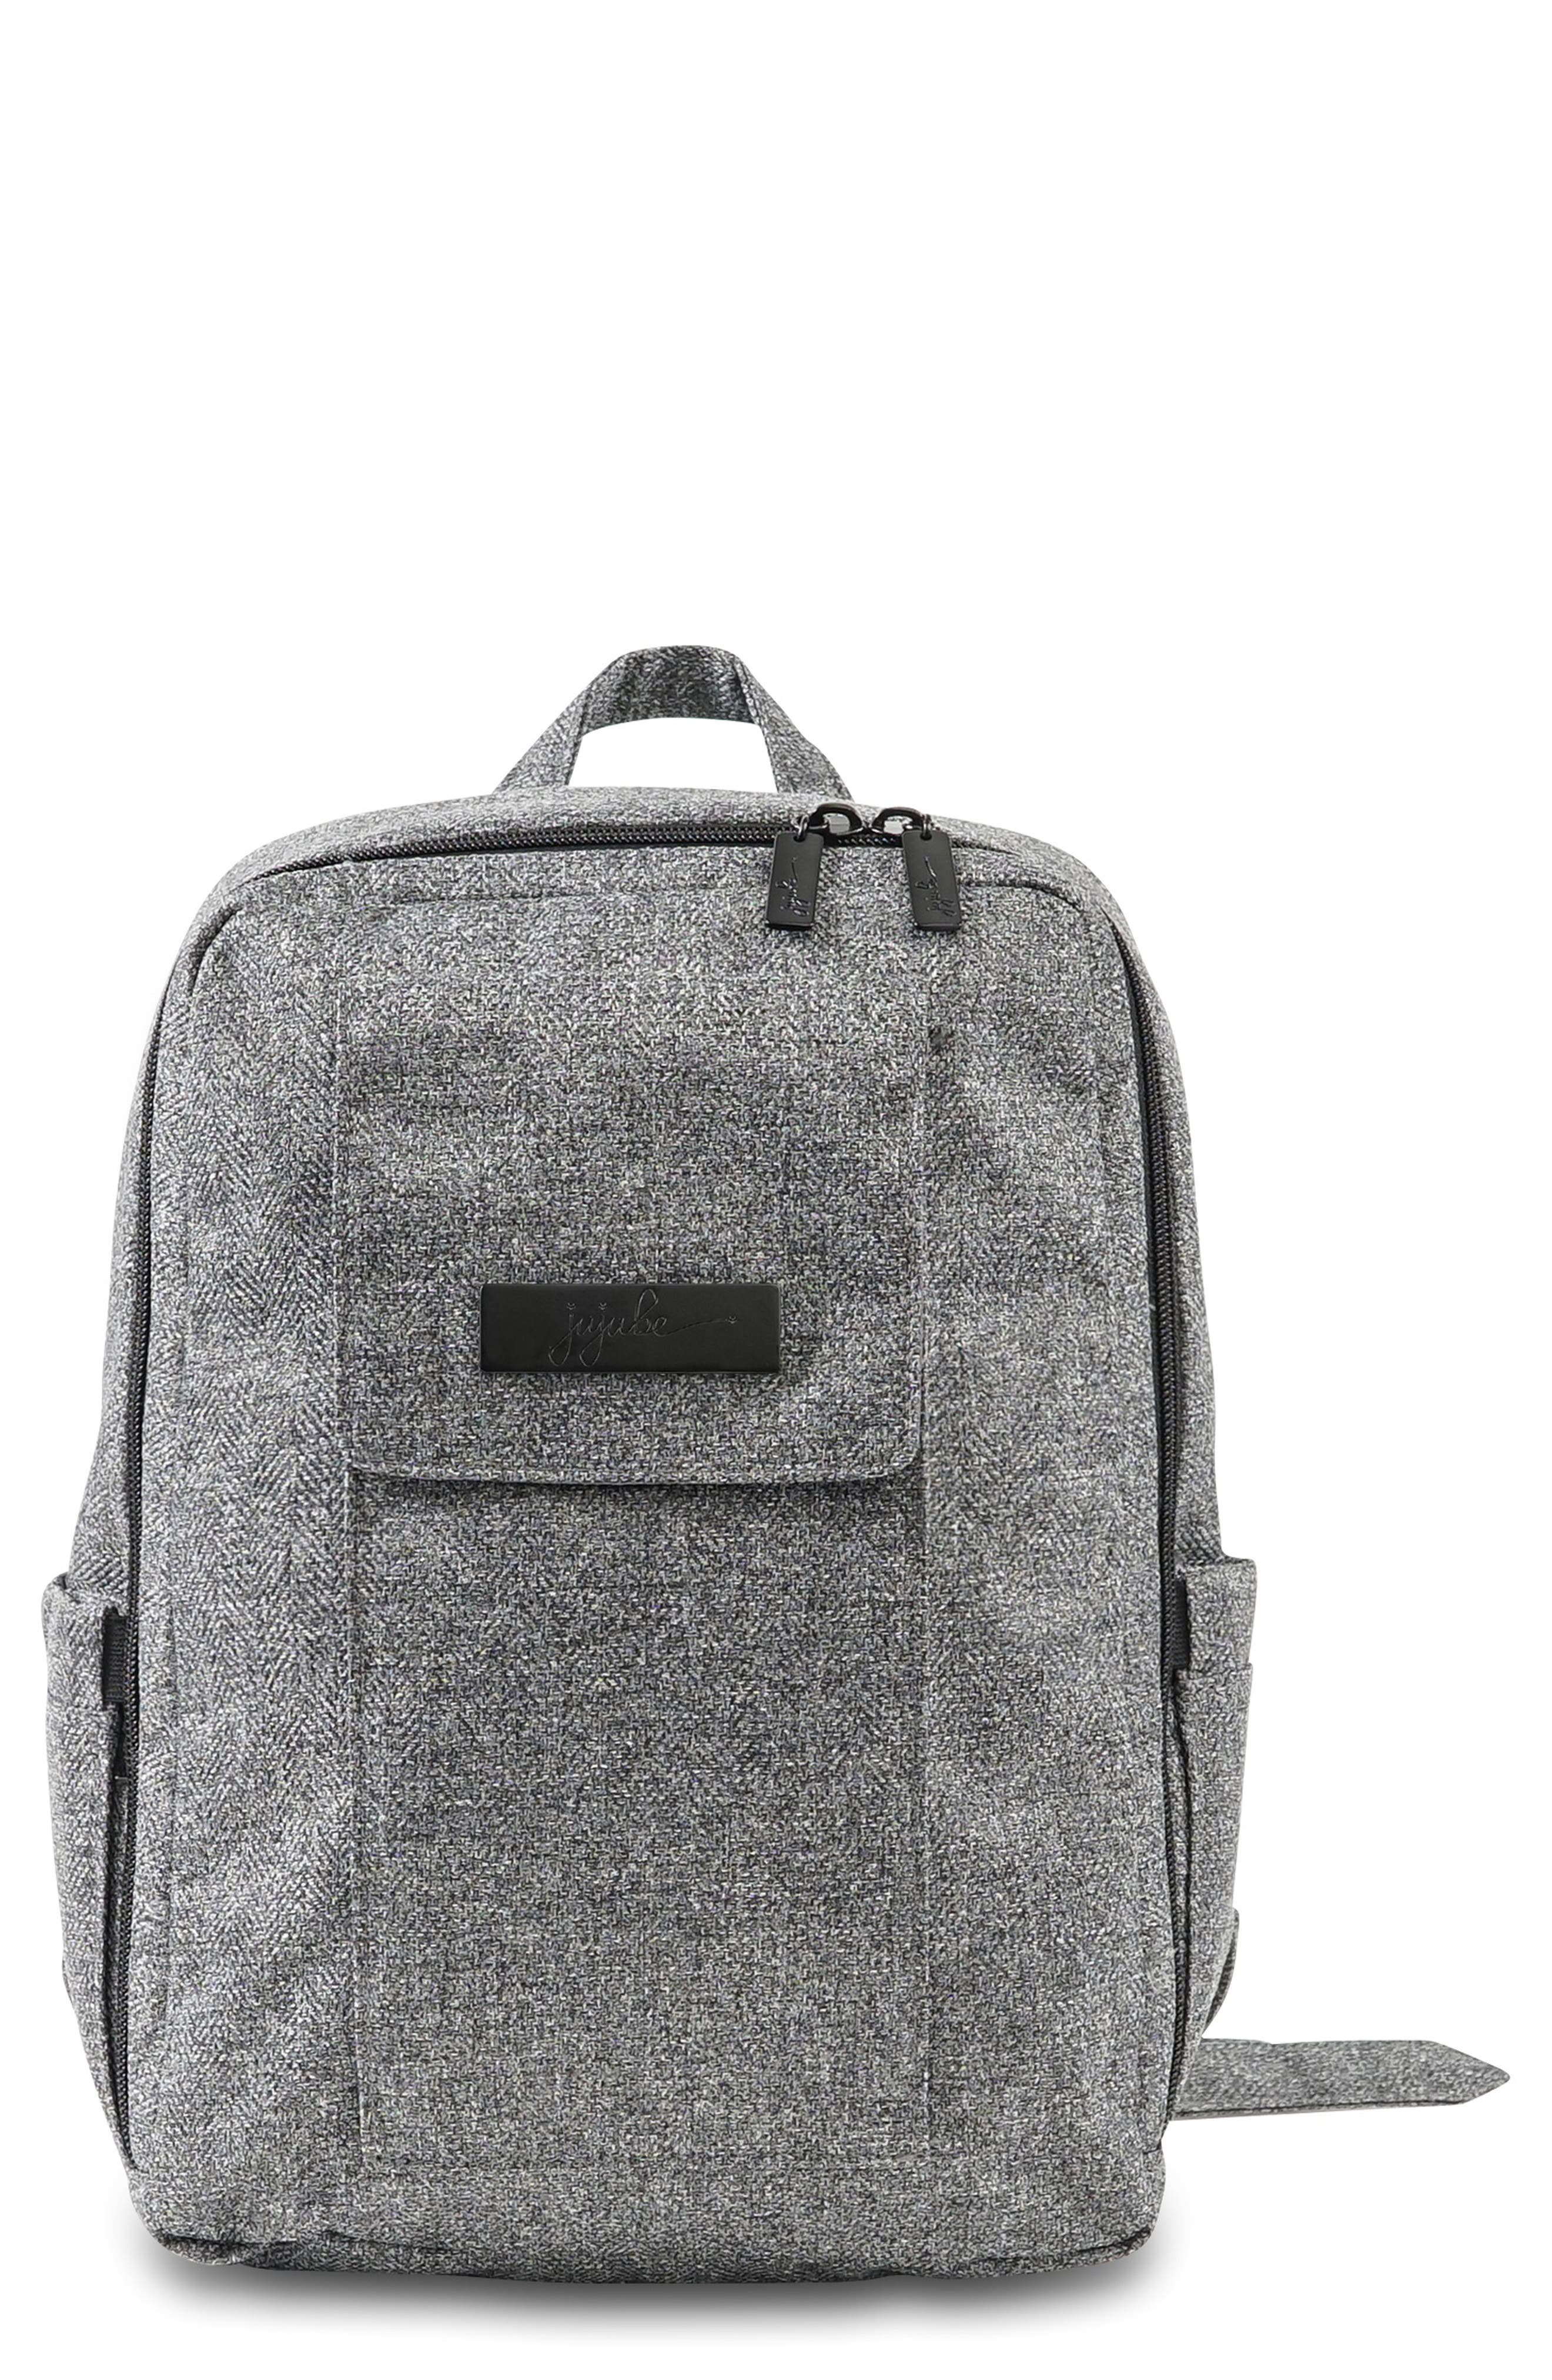 'Mini Be - Onyx Collection' Backpack,                             Main thumbnail 1, color,                             GRAY MATTER